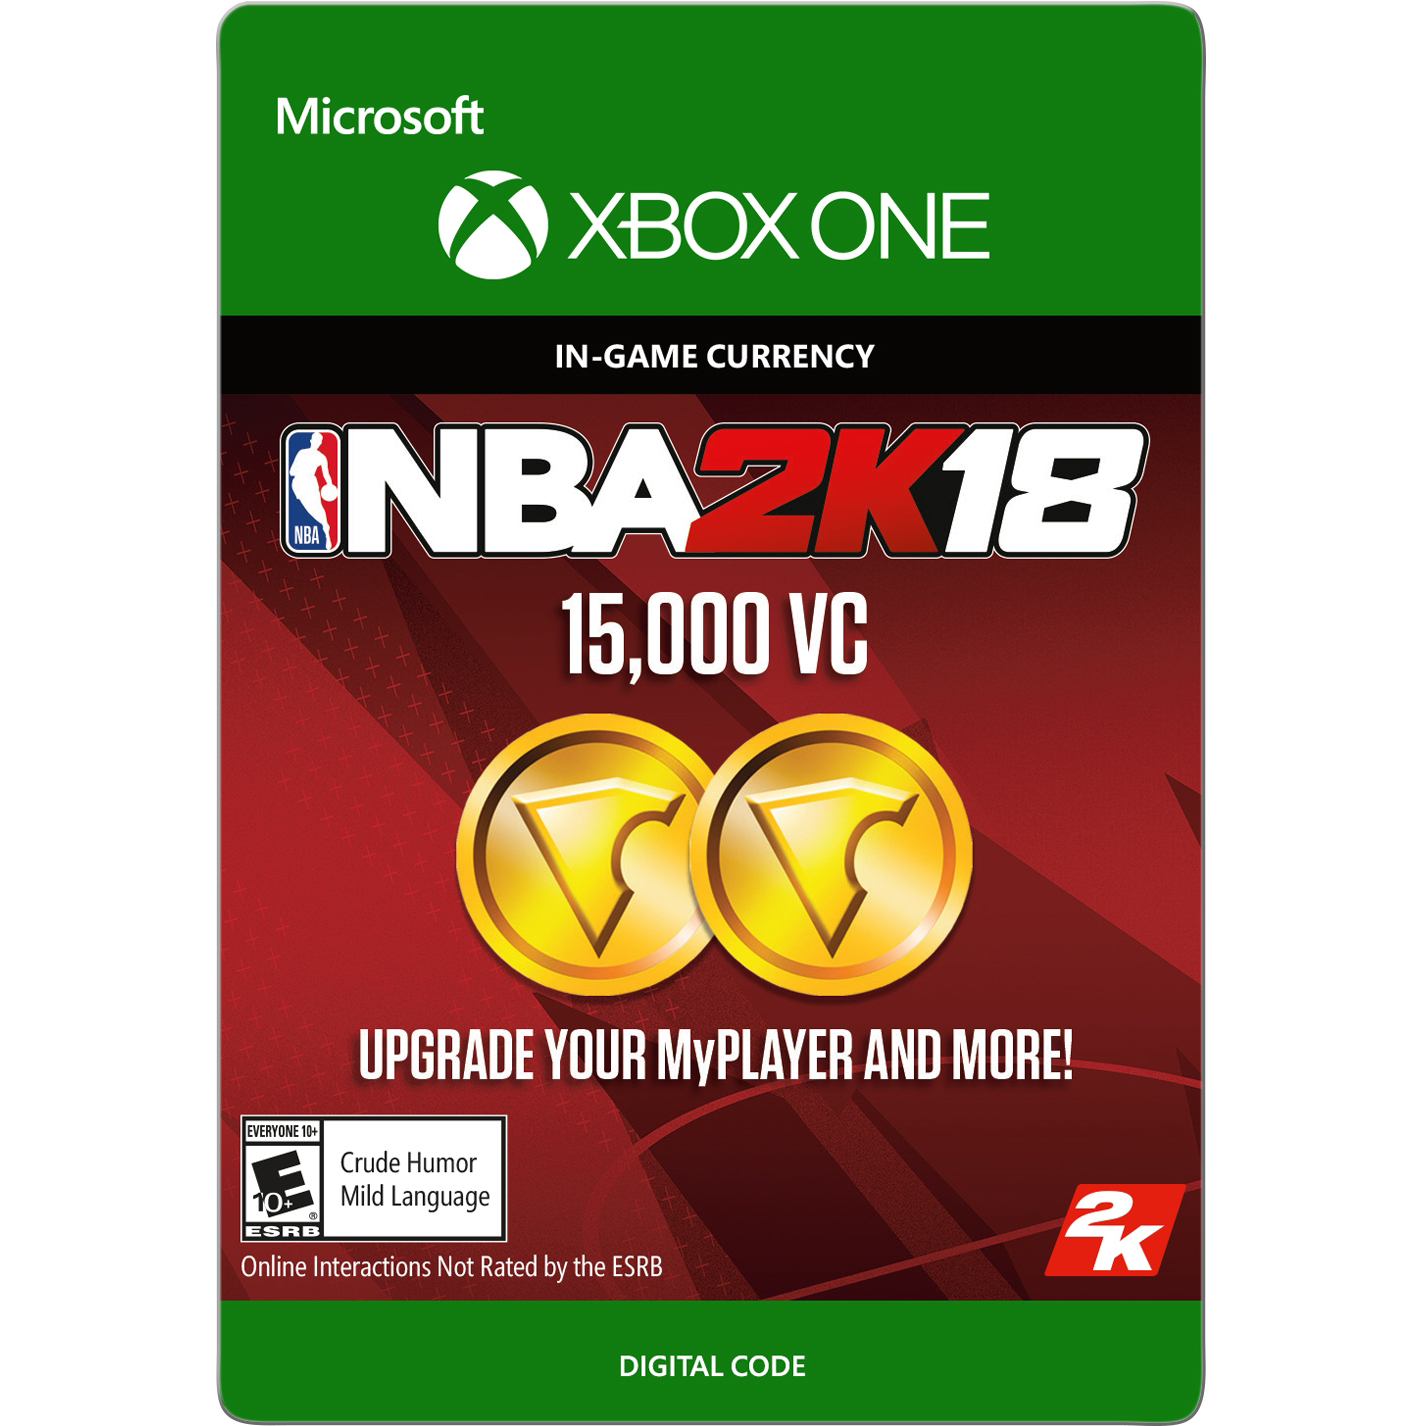 NBA 2K18 15,000 VC (Digital Download), 2K, Xbox One, 799366475873